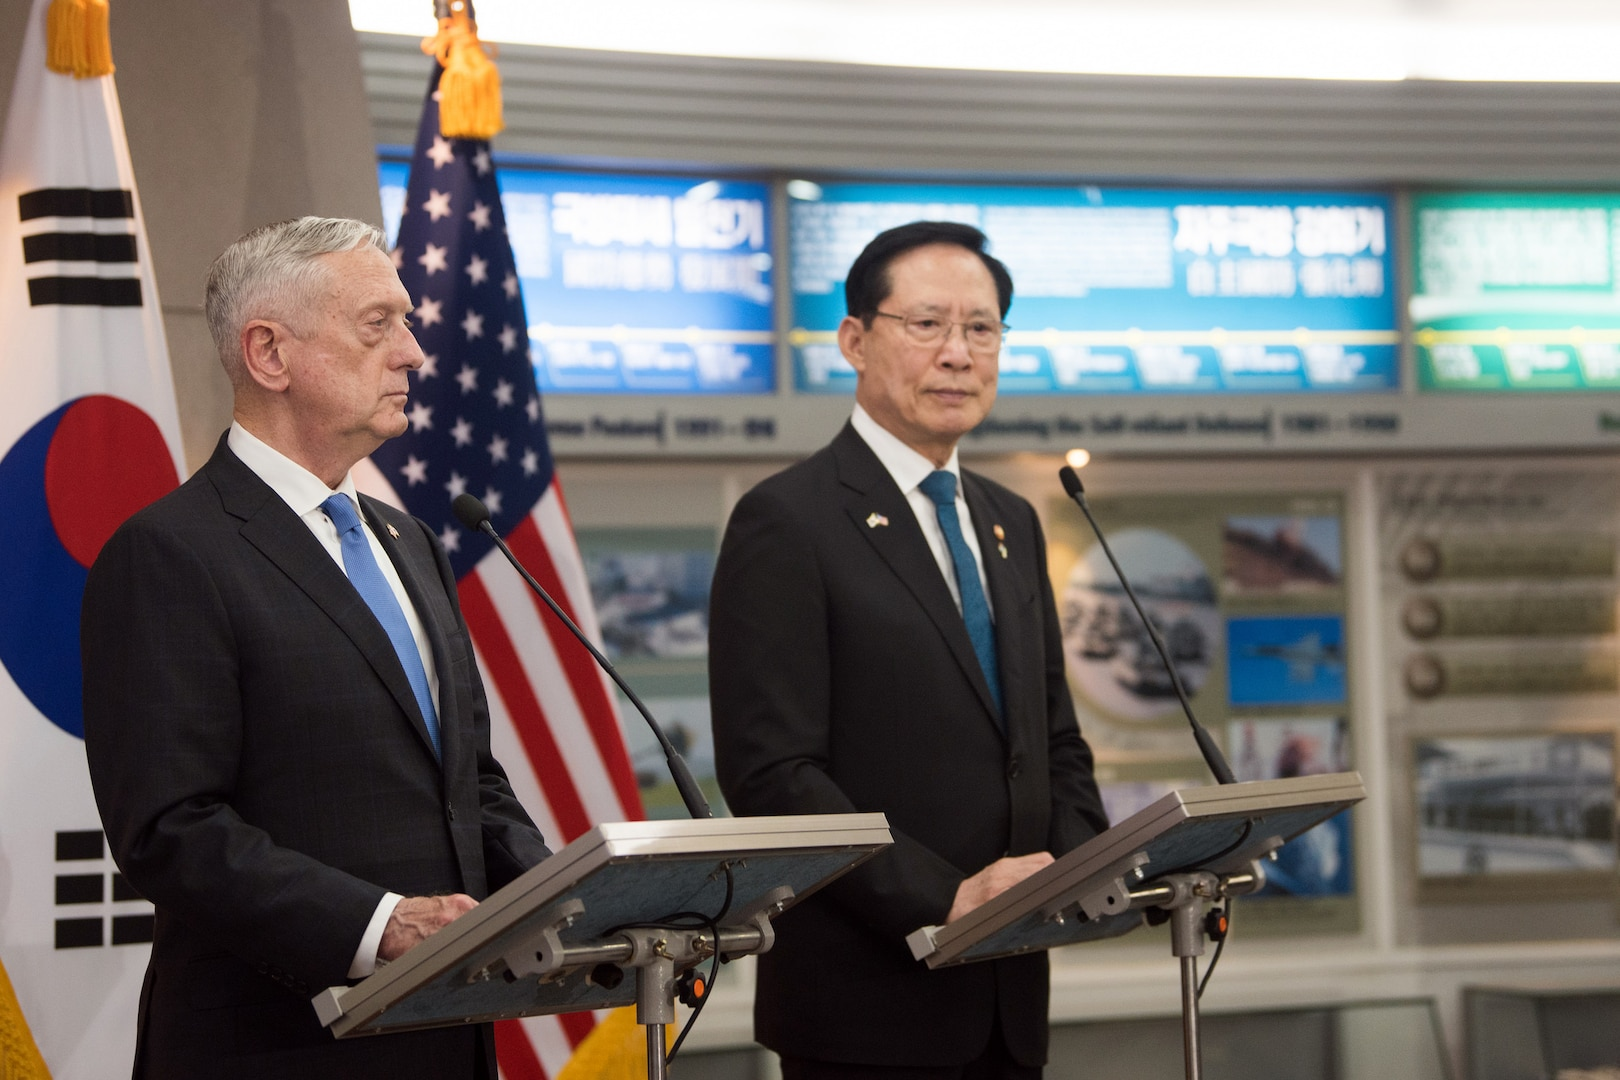 Defense Secretary James N. Mattis and the South Korean defense minister speak from behind podiums.